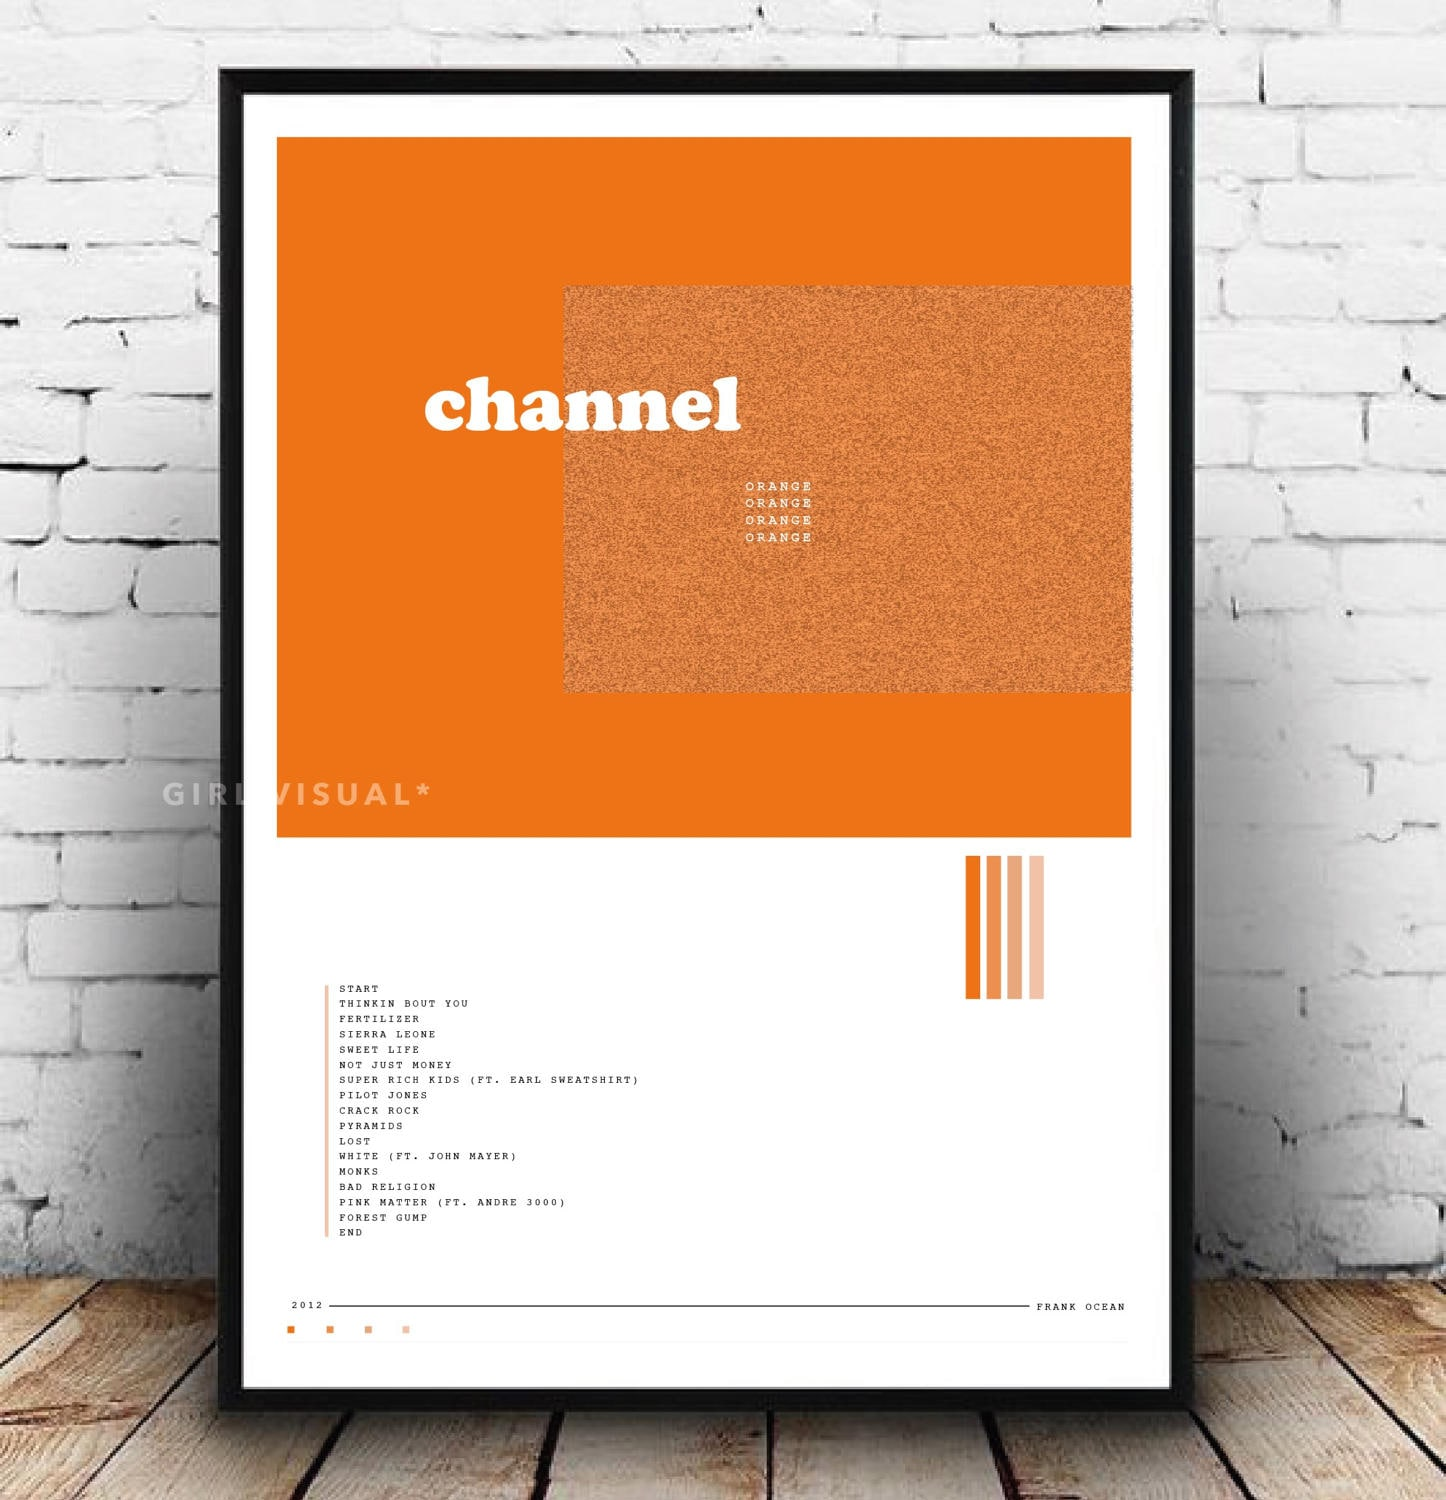 Frank Ocean Poster Frank Ocean Channel Orange Album Poster -6180